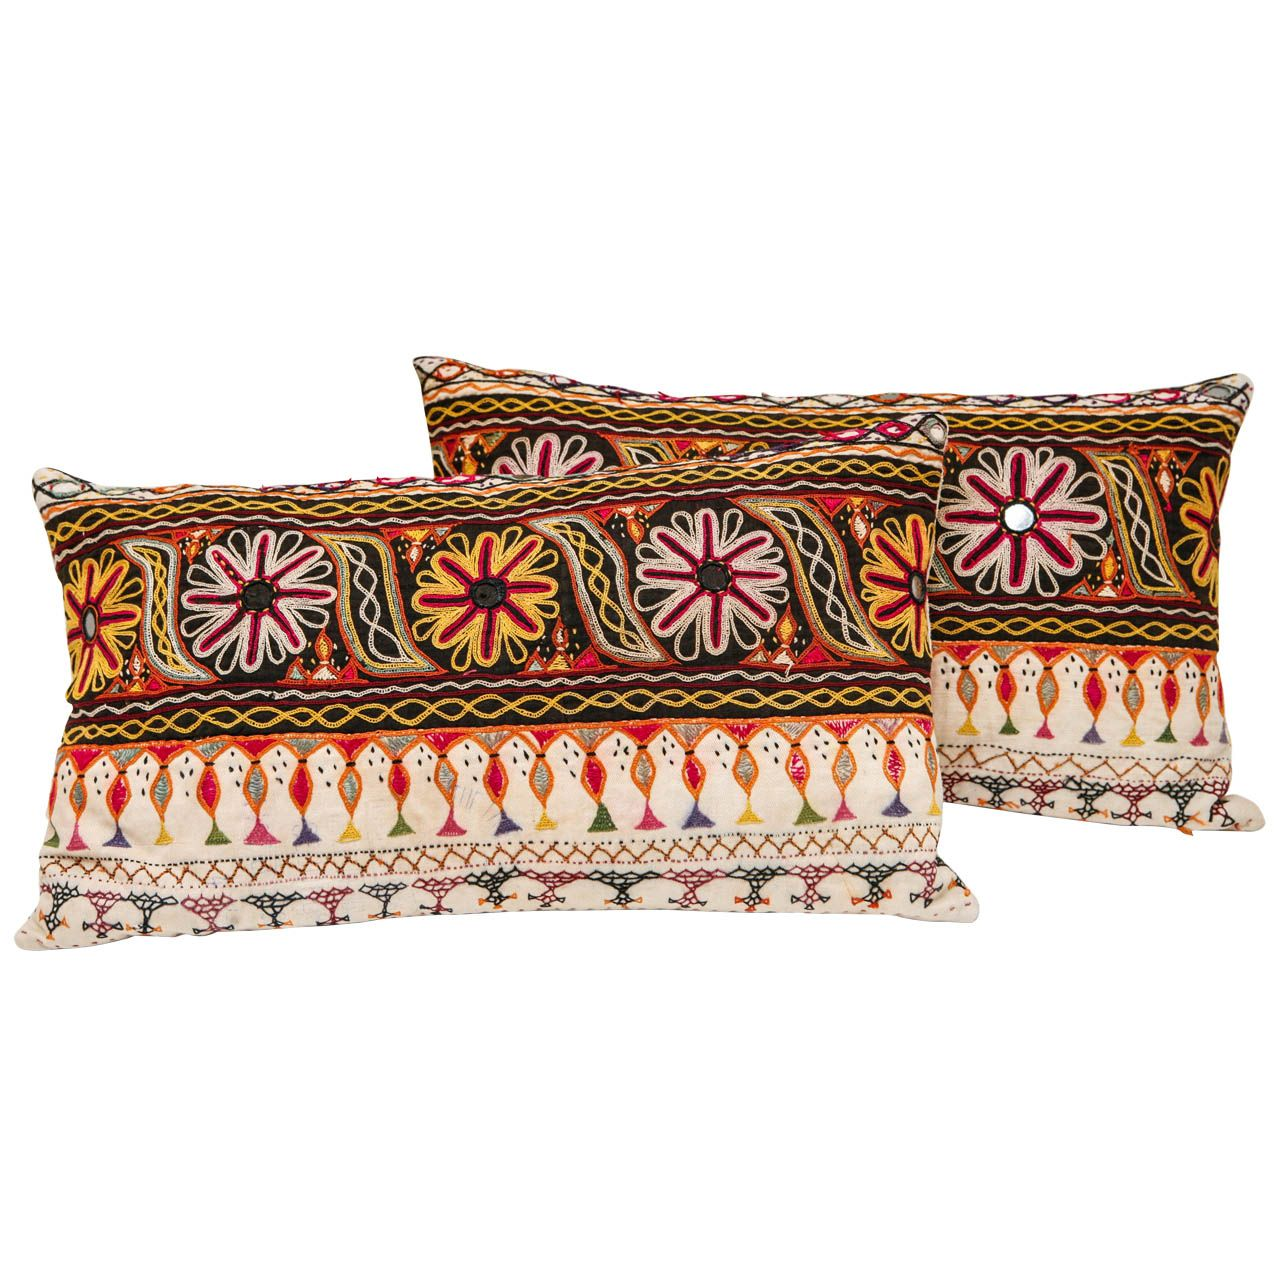 Kutch Indian Embroidered Pillows